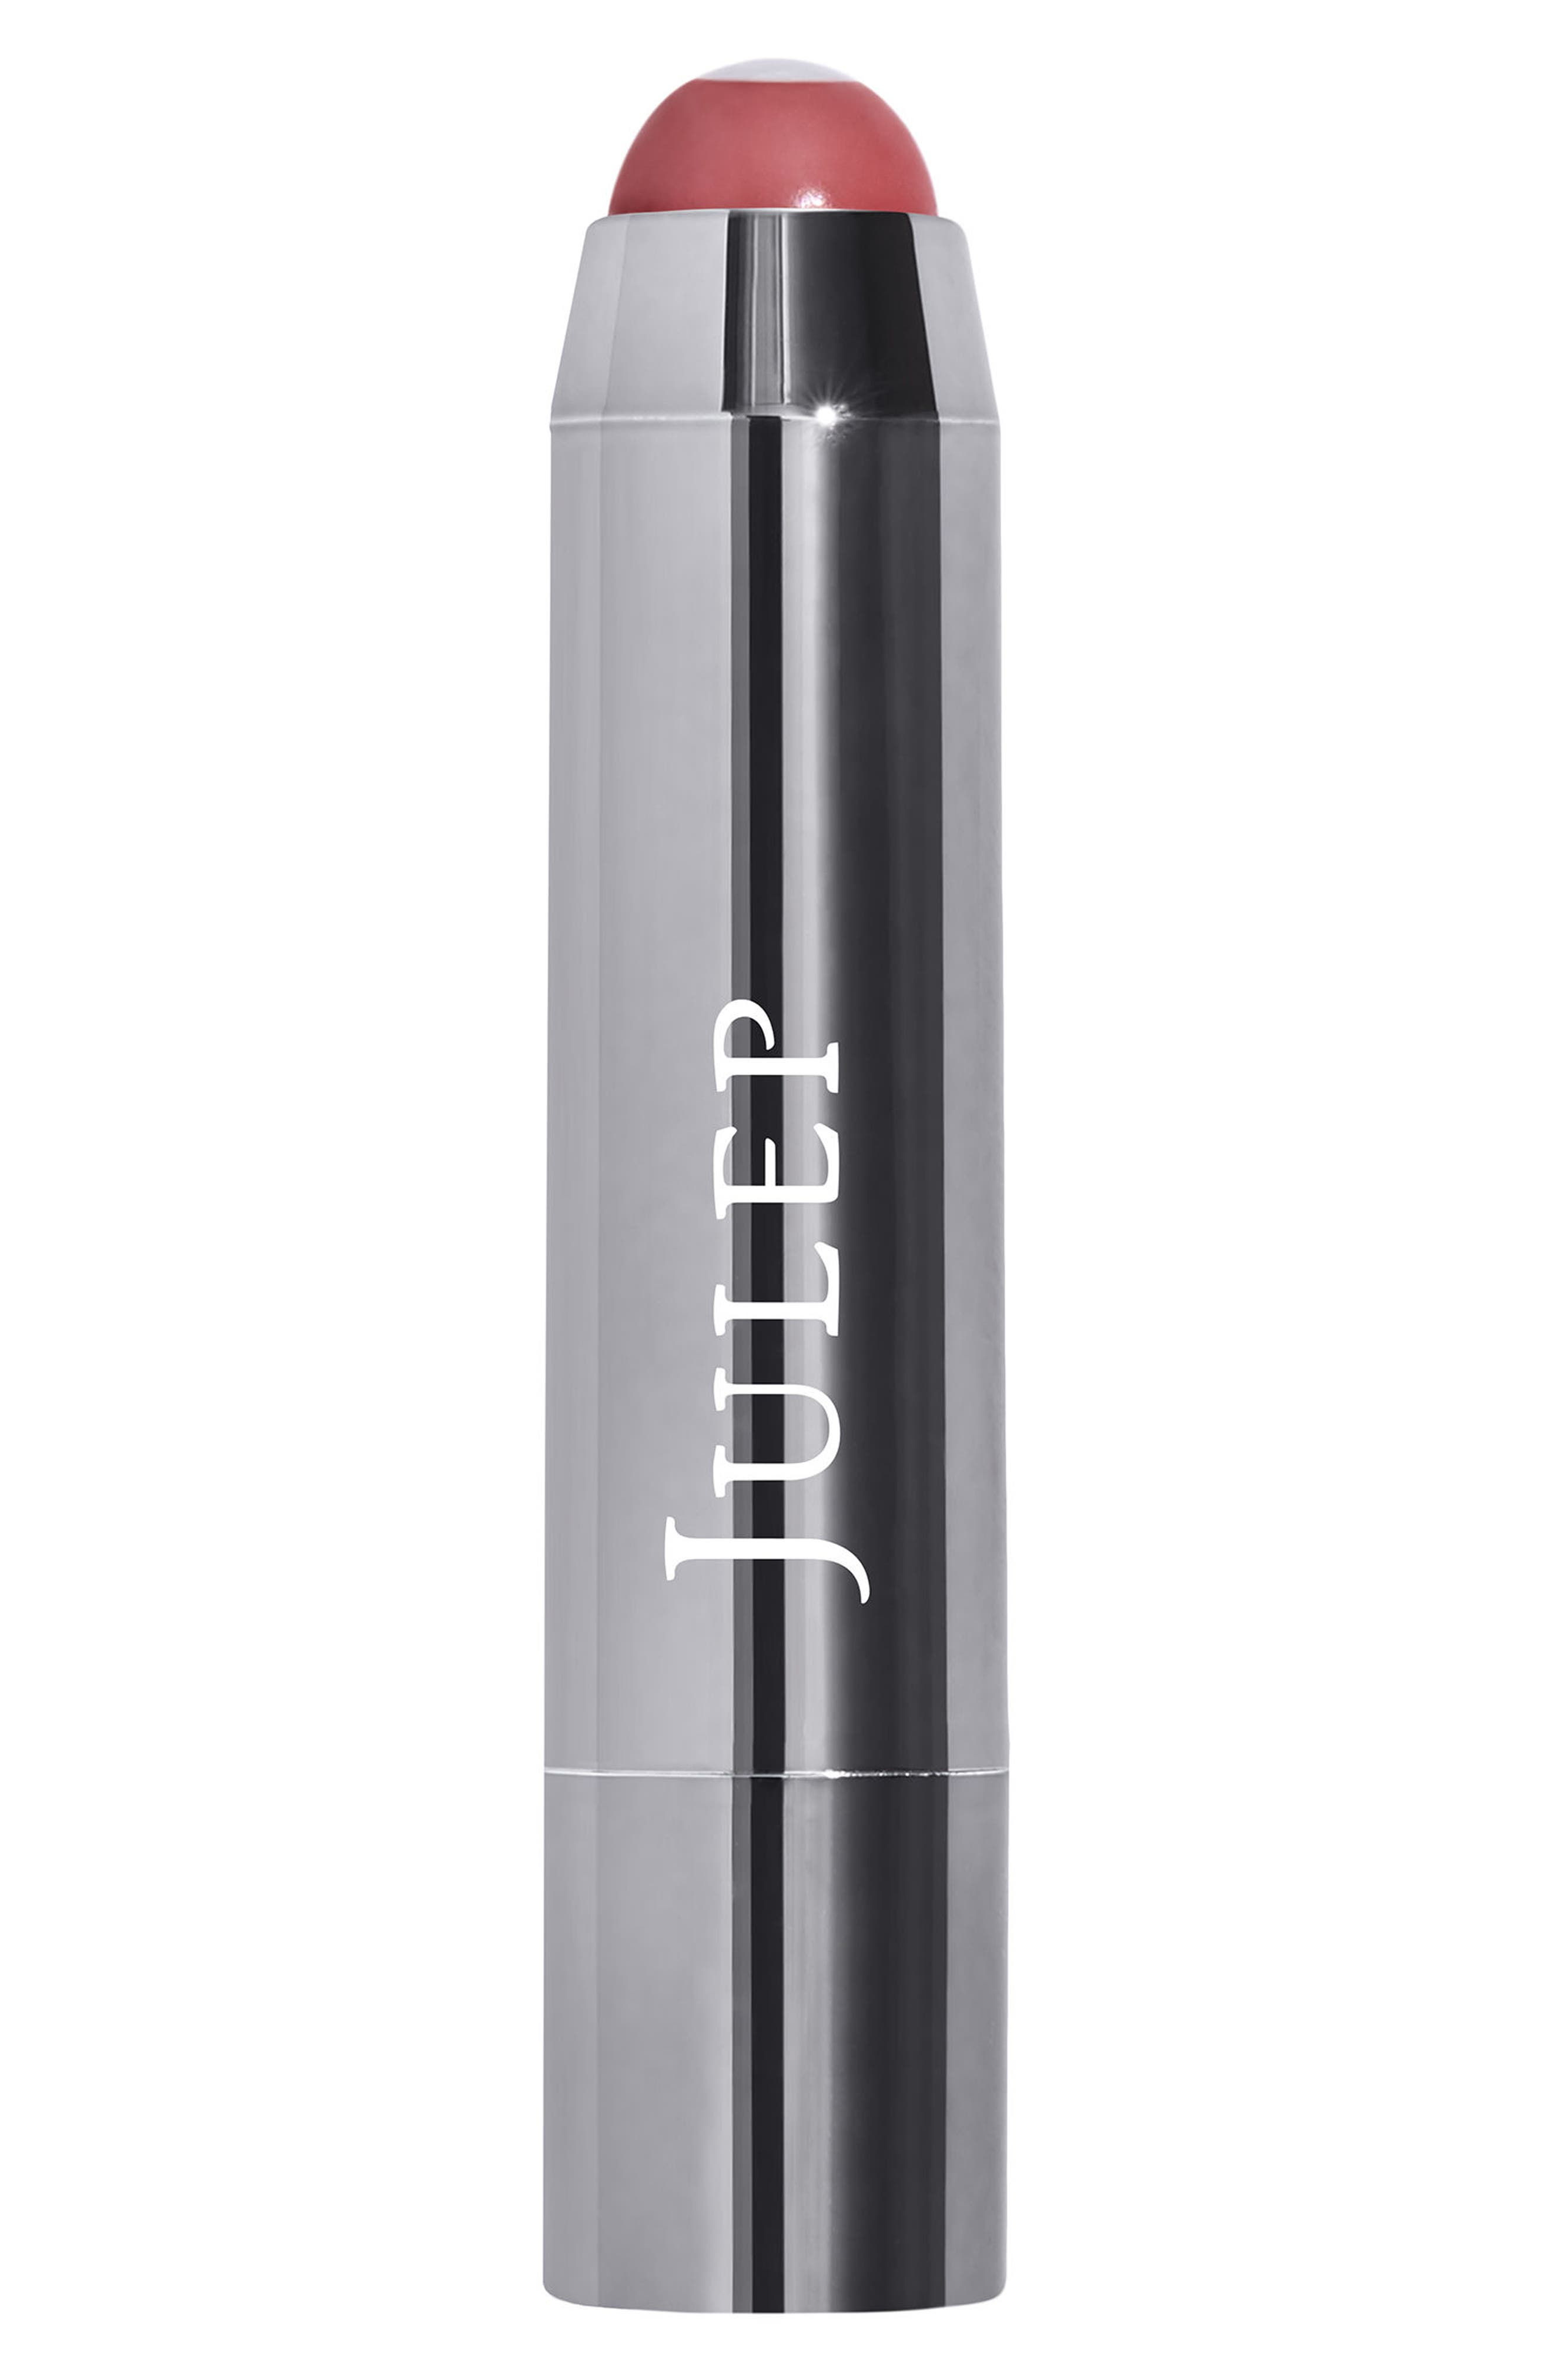 Julep<sup>™</sup> It's Balm Lip Crayon,                         Main,                         color, Dusty Orchid Shimmer